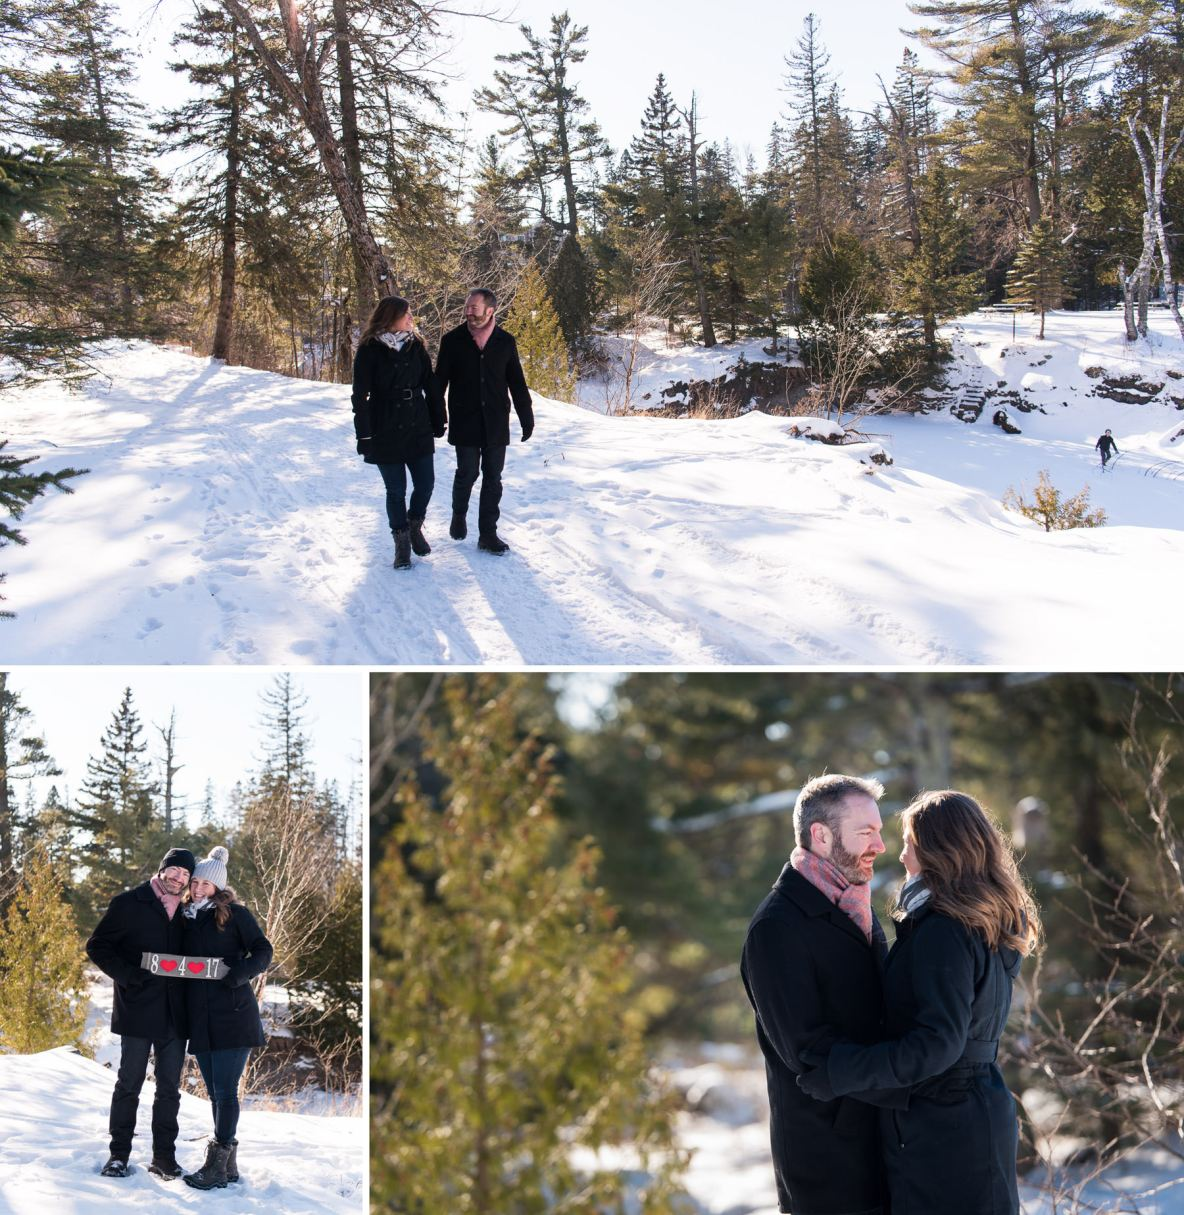 Engaged couple outside in snowy landscape.